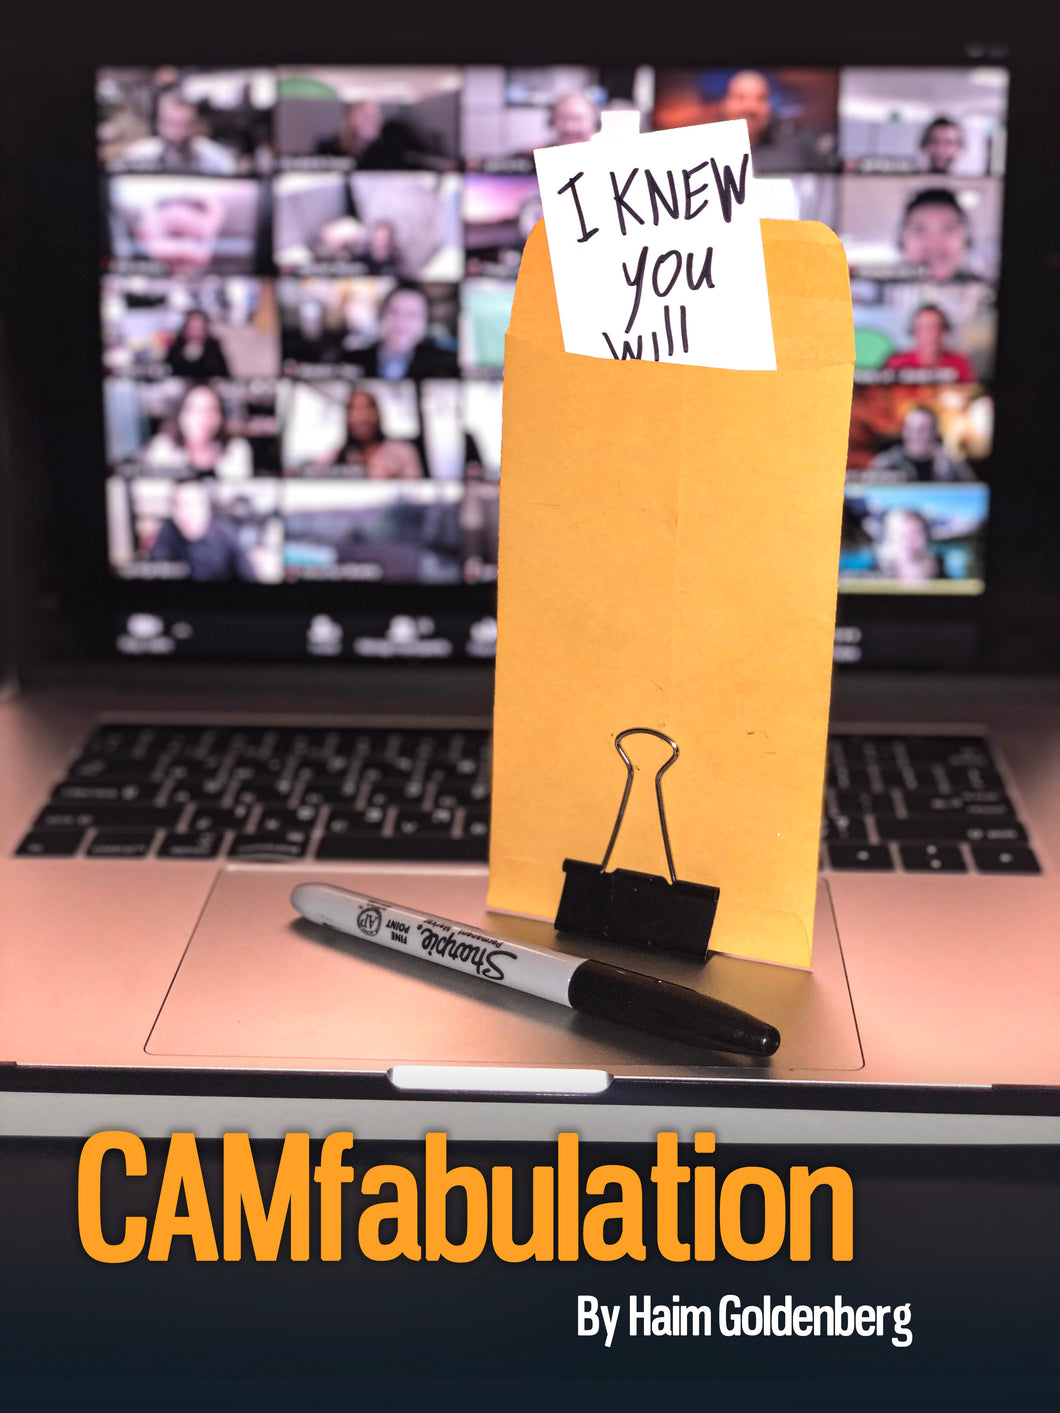 CAMfabulation